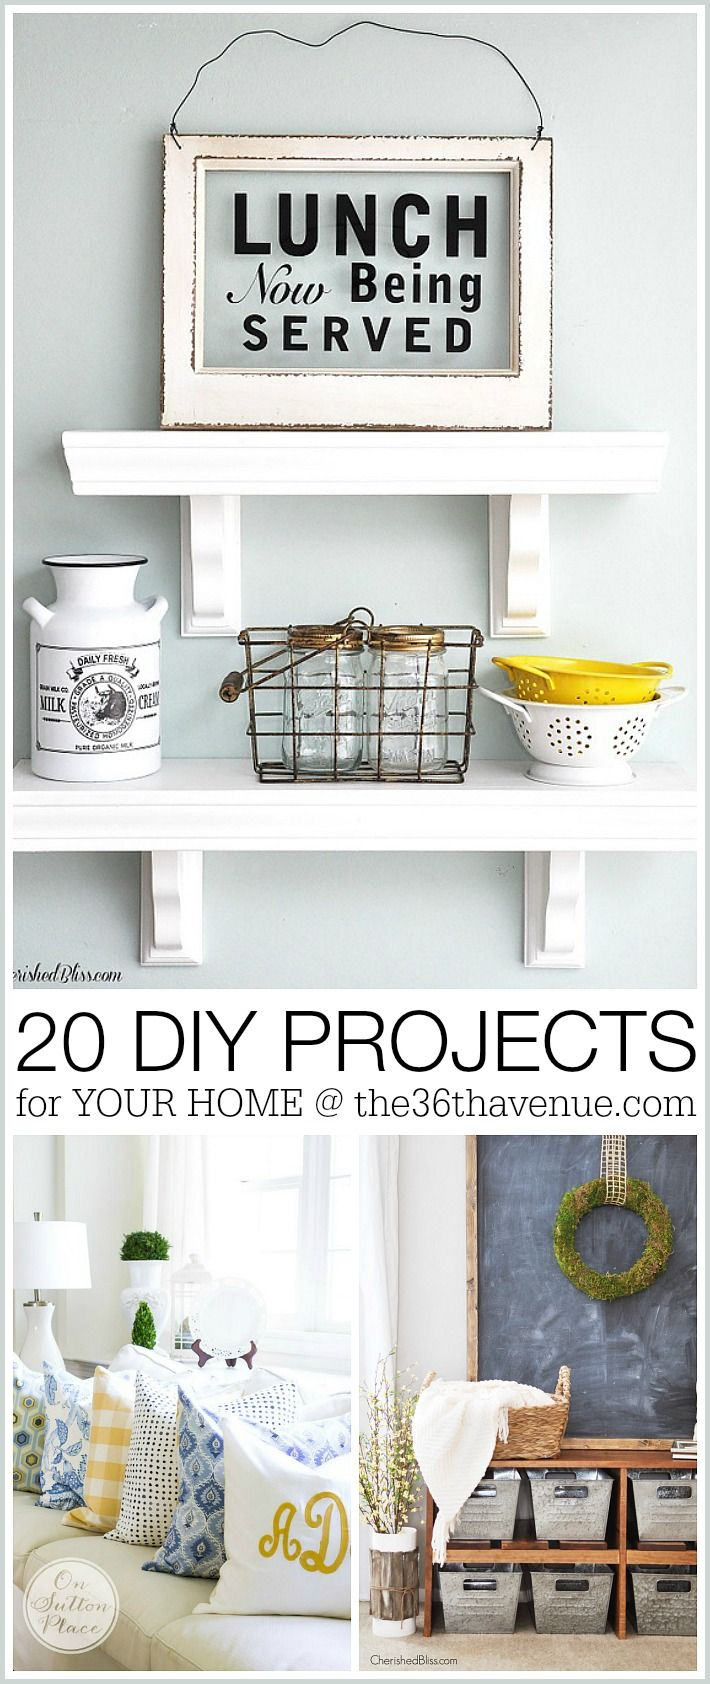 Home Decor DIY Projects at the36thavenue.com These ideas are gorgeous! Pin it now and make them later!